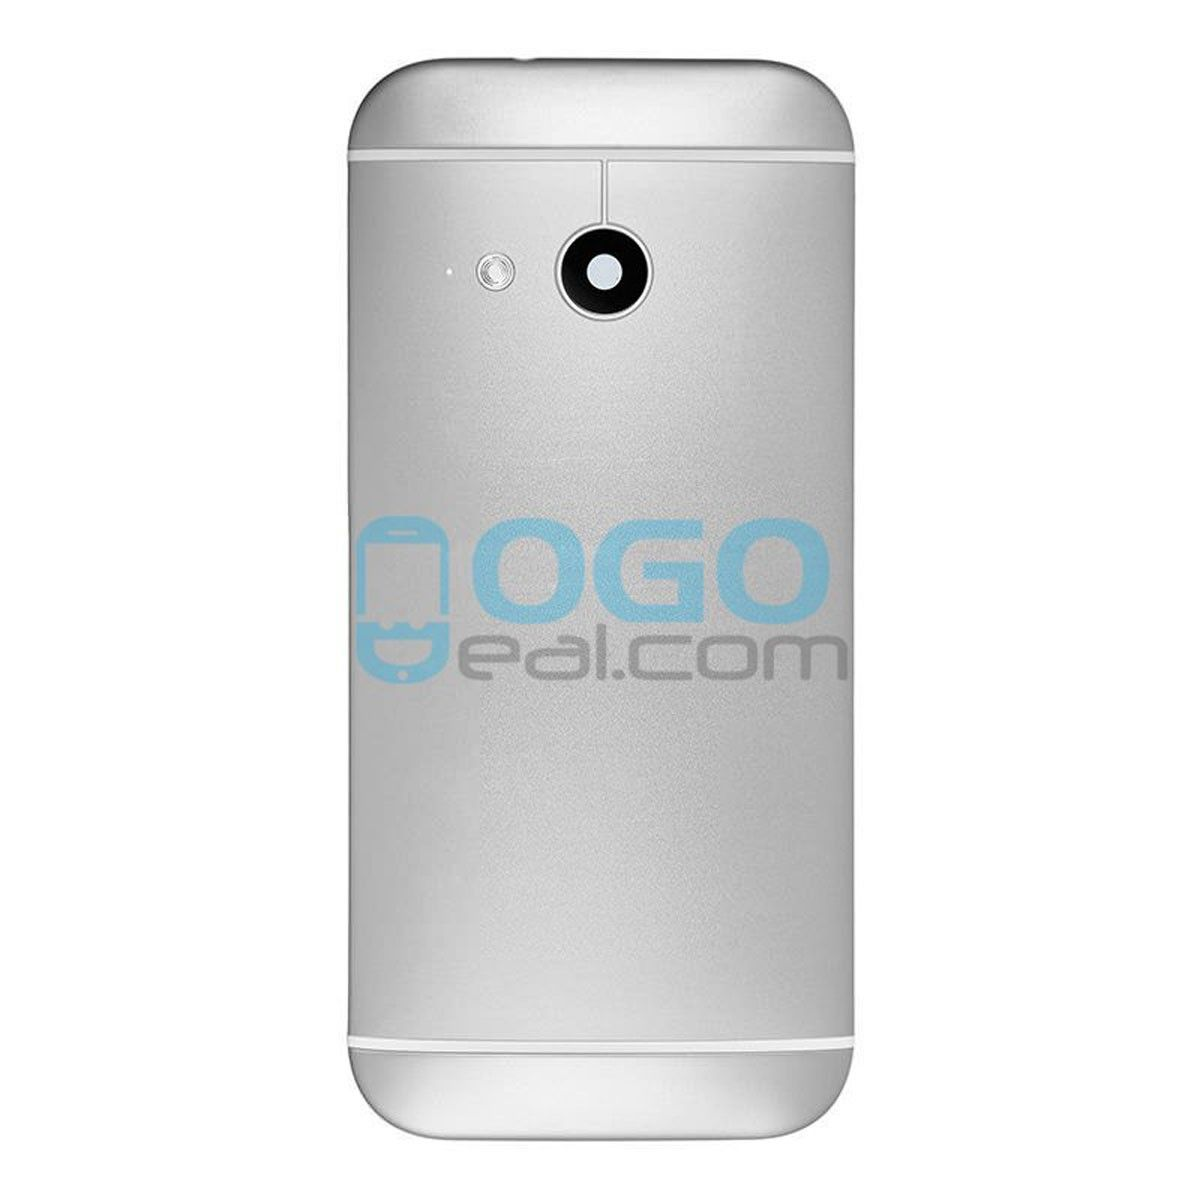 Battery Door/Back Cover Replacement for #back #cover #HTC #One #Mini 2 - Silver @ http://www.ogodeal.com/battery-door-back-cover-replacement-for-htc-one-mini-2-silver.html